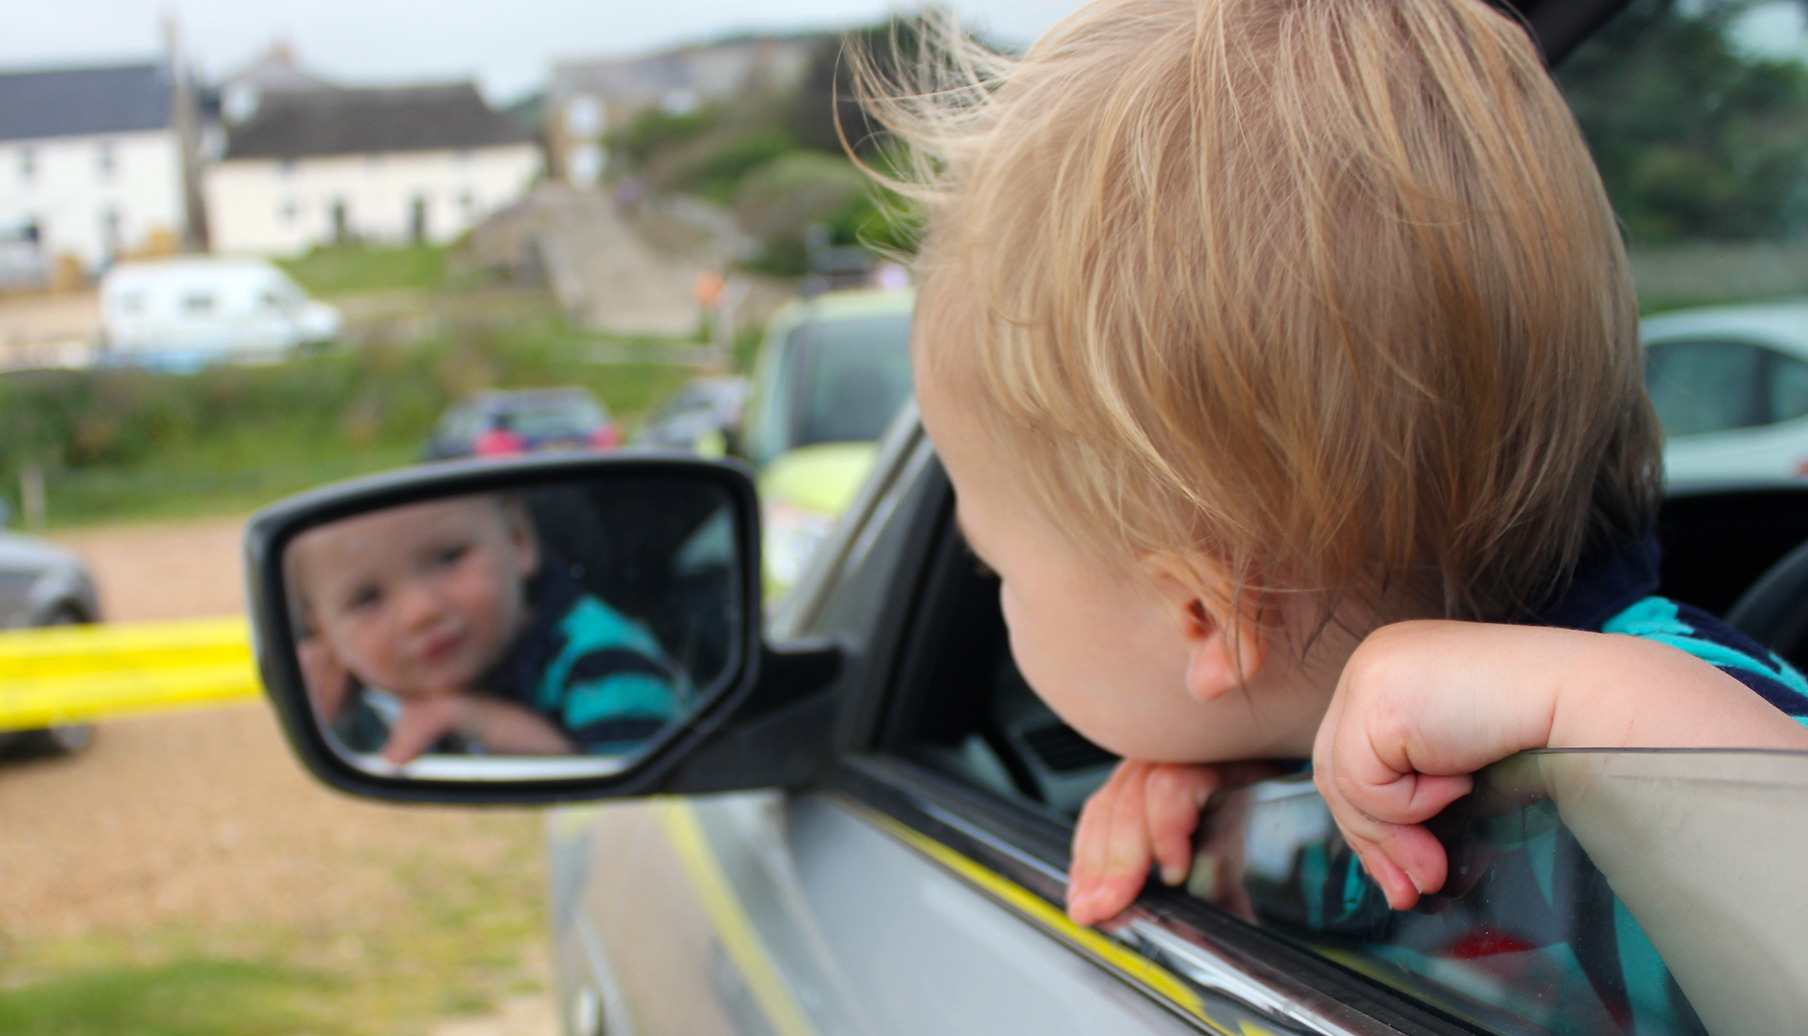 Boy looking out of car window